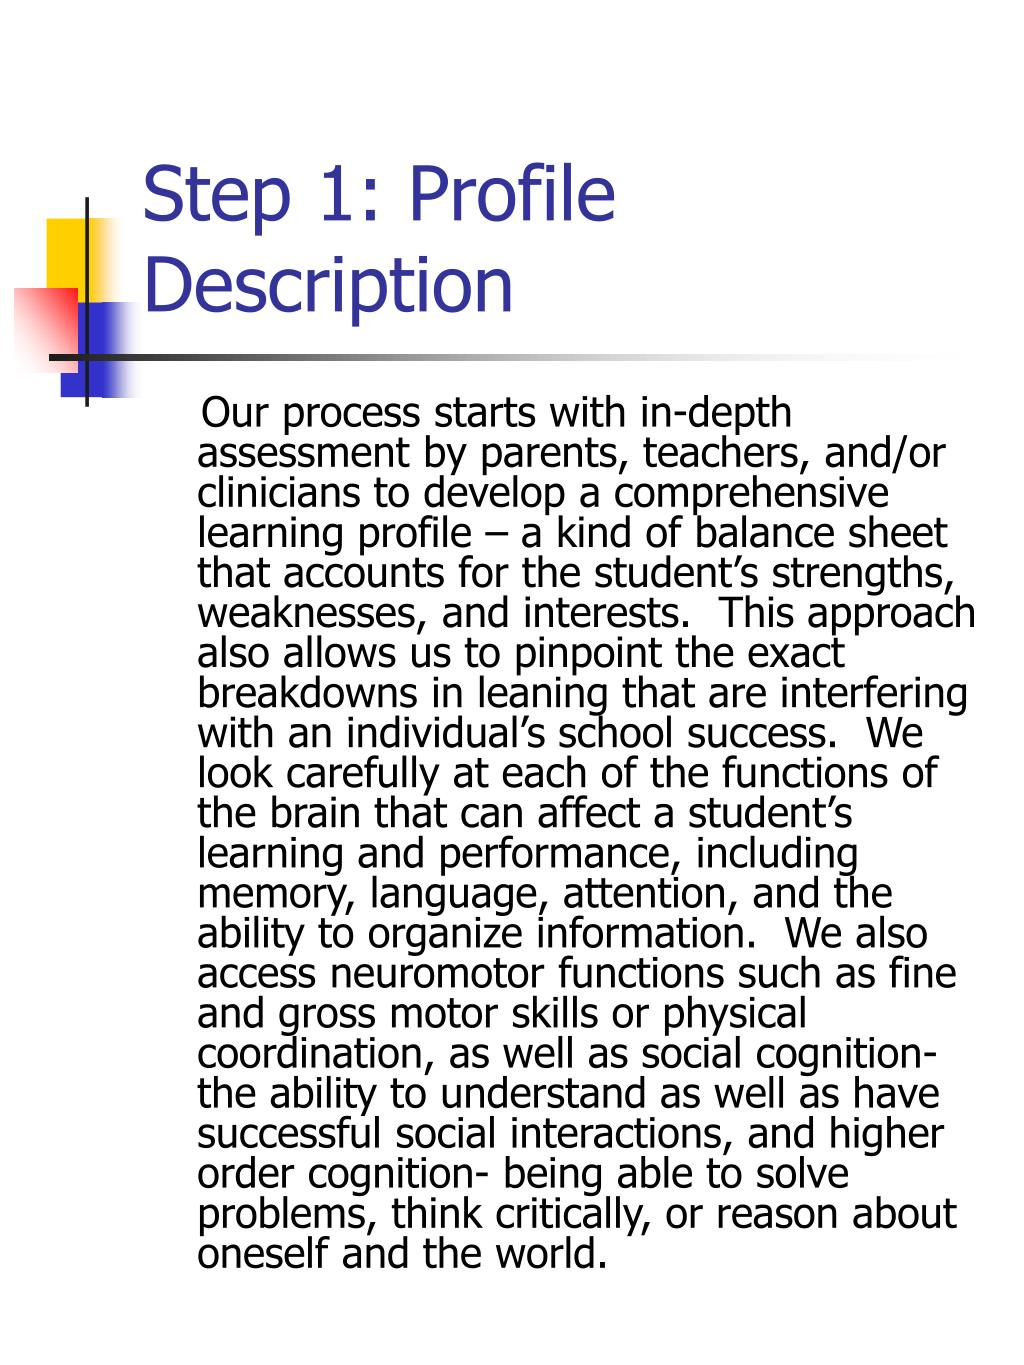 Step 1: Profile Description